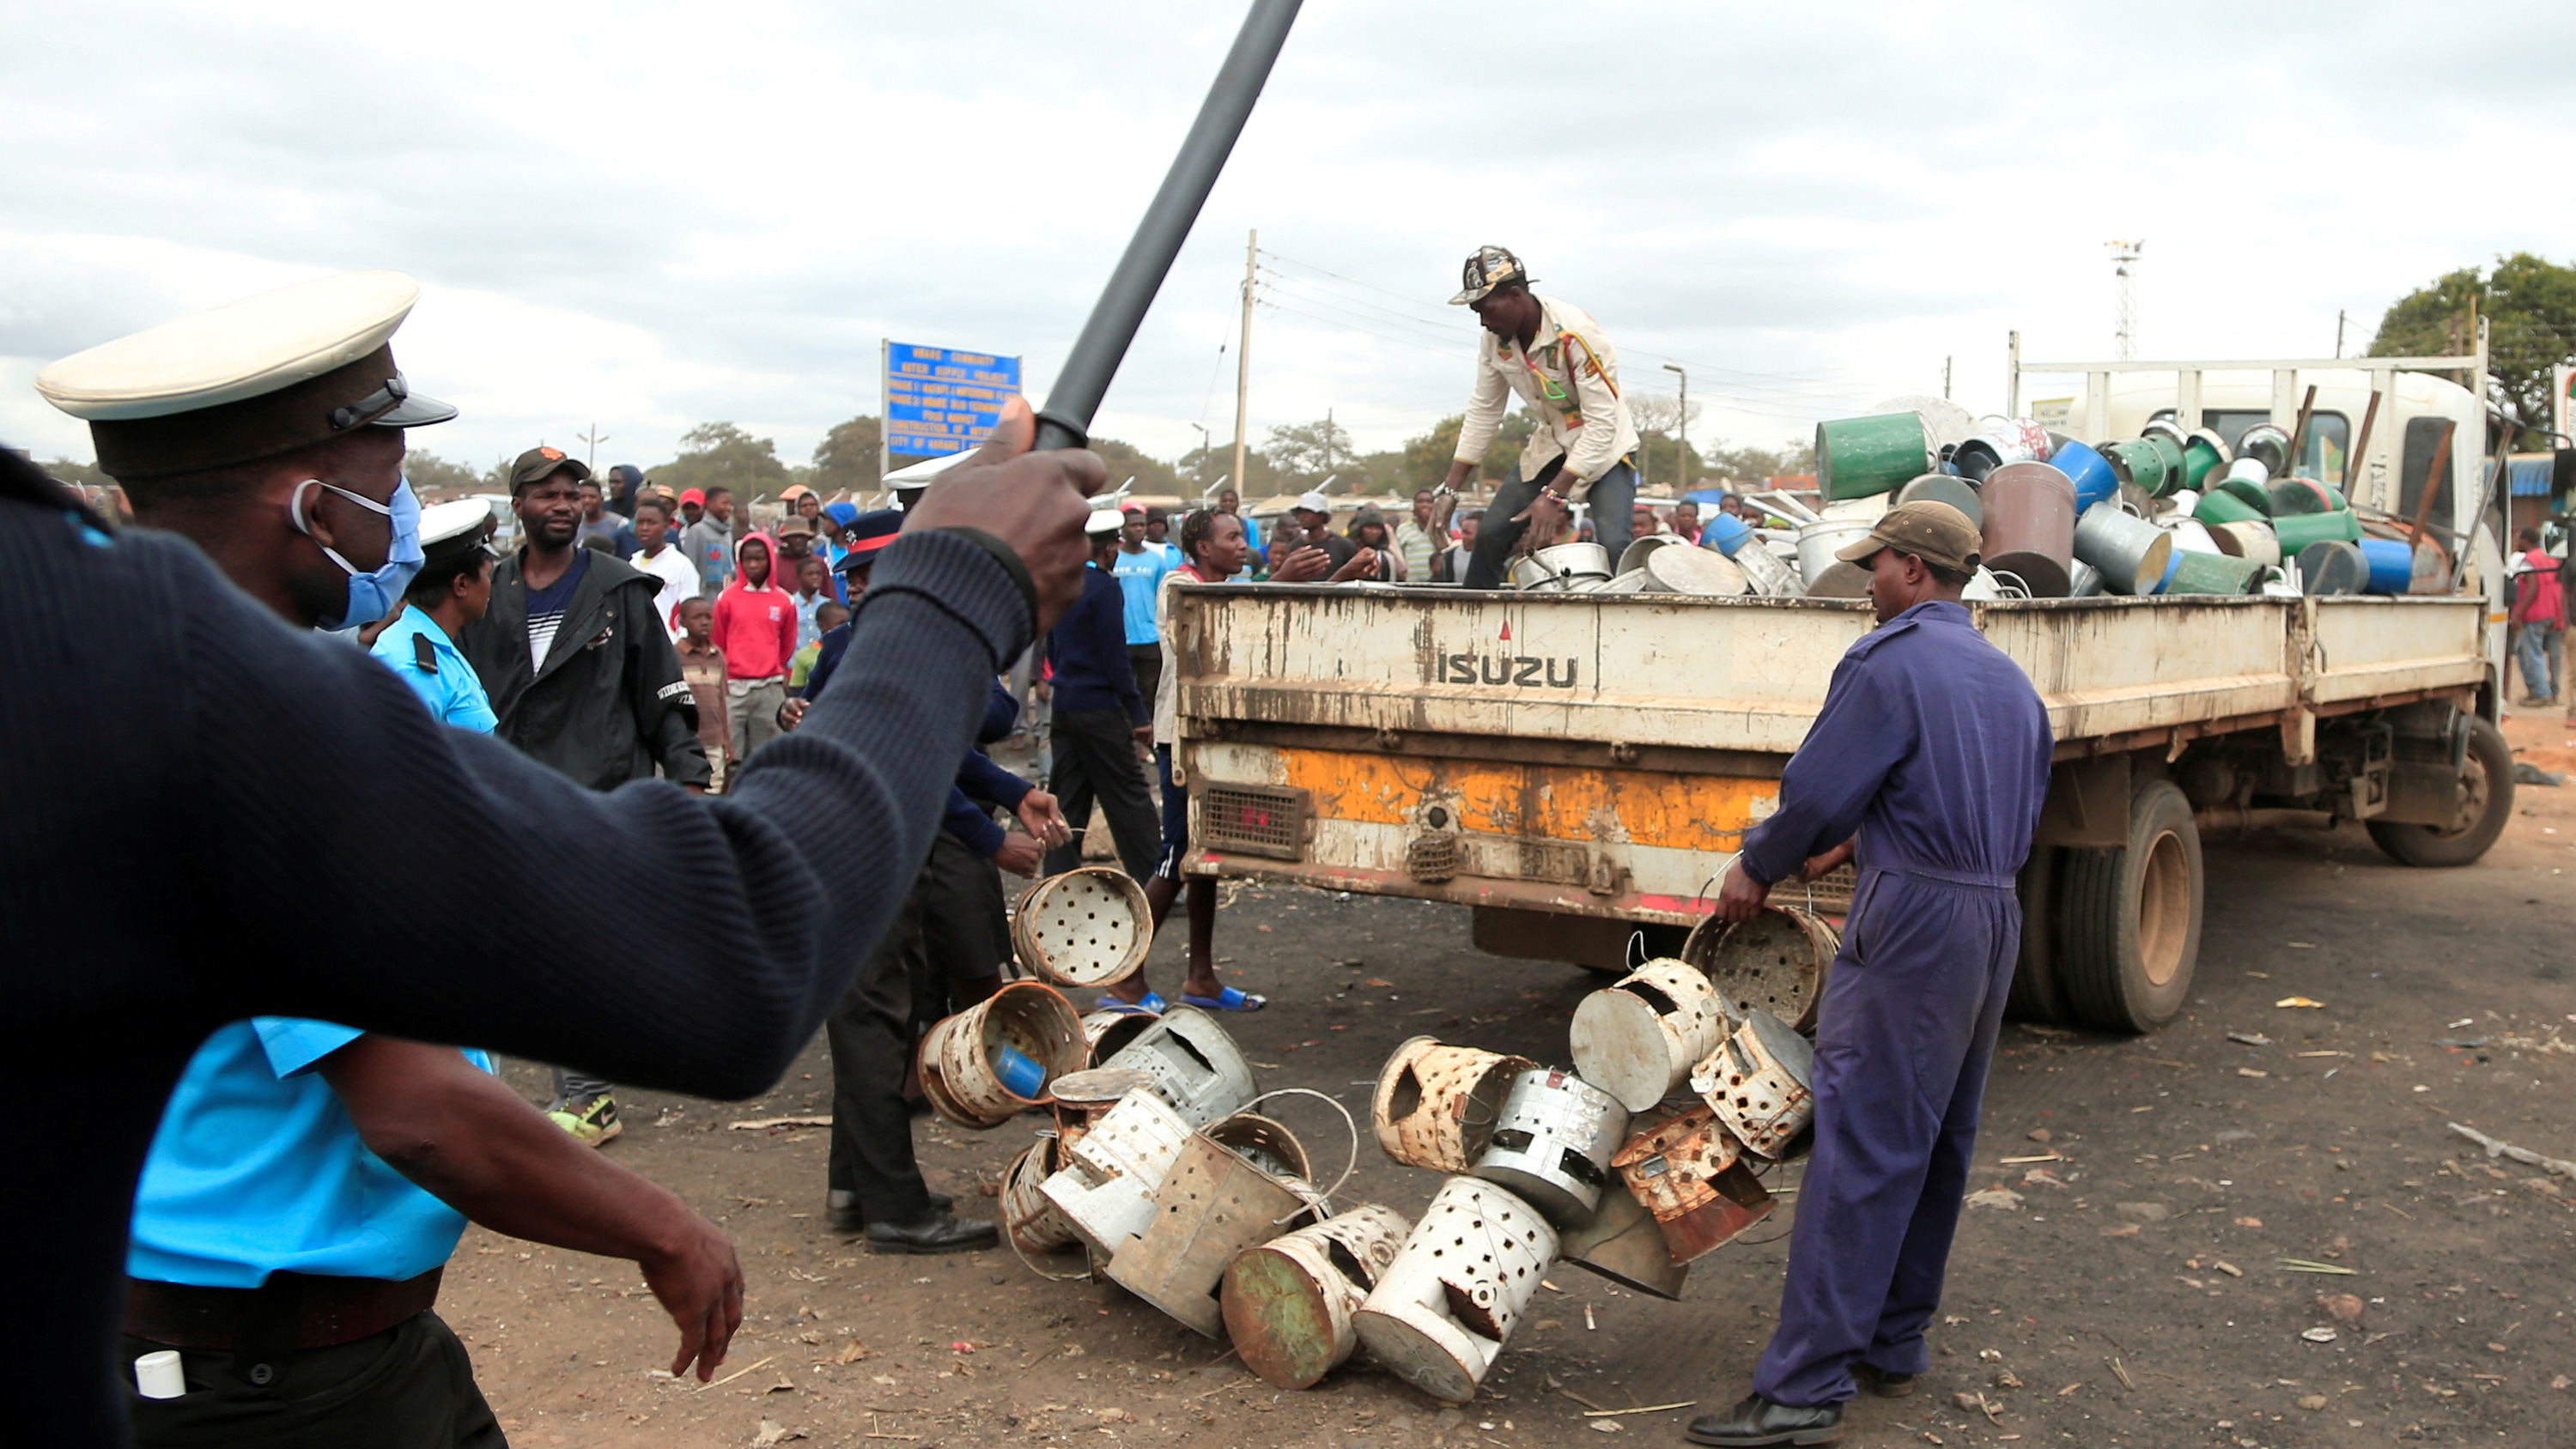 The photo shows a chaotic scene with a police officer waving a baton and people dragging crates and barrels onto a truck.